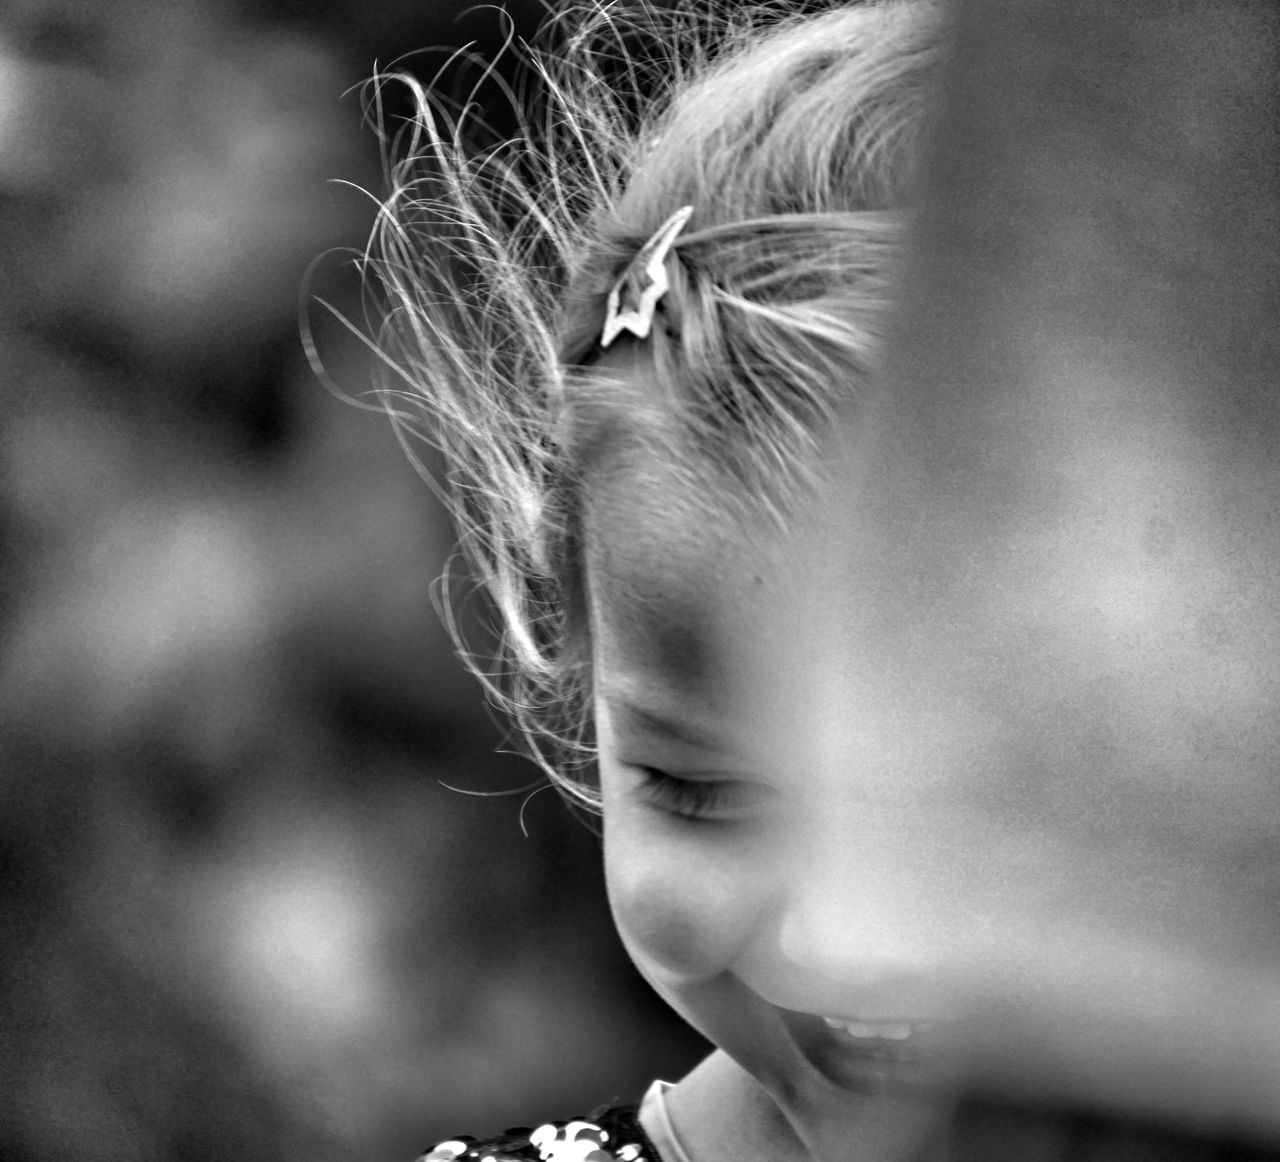 childhood, one person, real people, focus on foreground, close-up, girls, day, outdoors, human face, blond hair, young adult, people